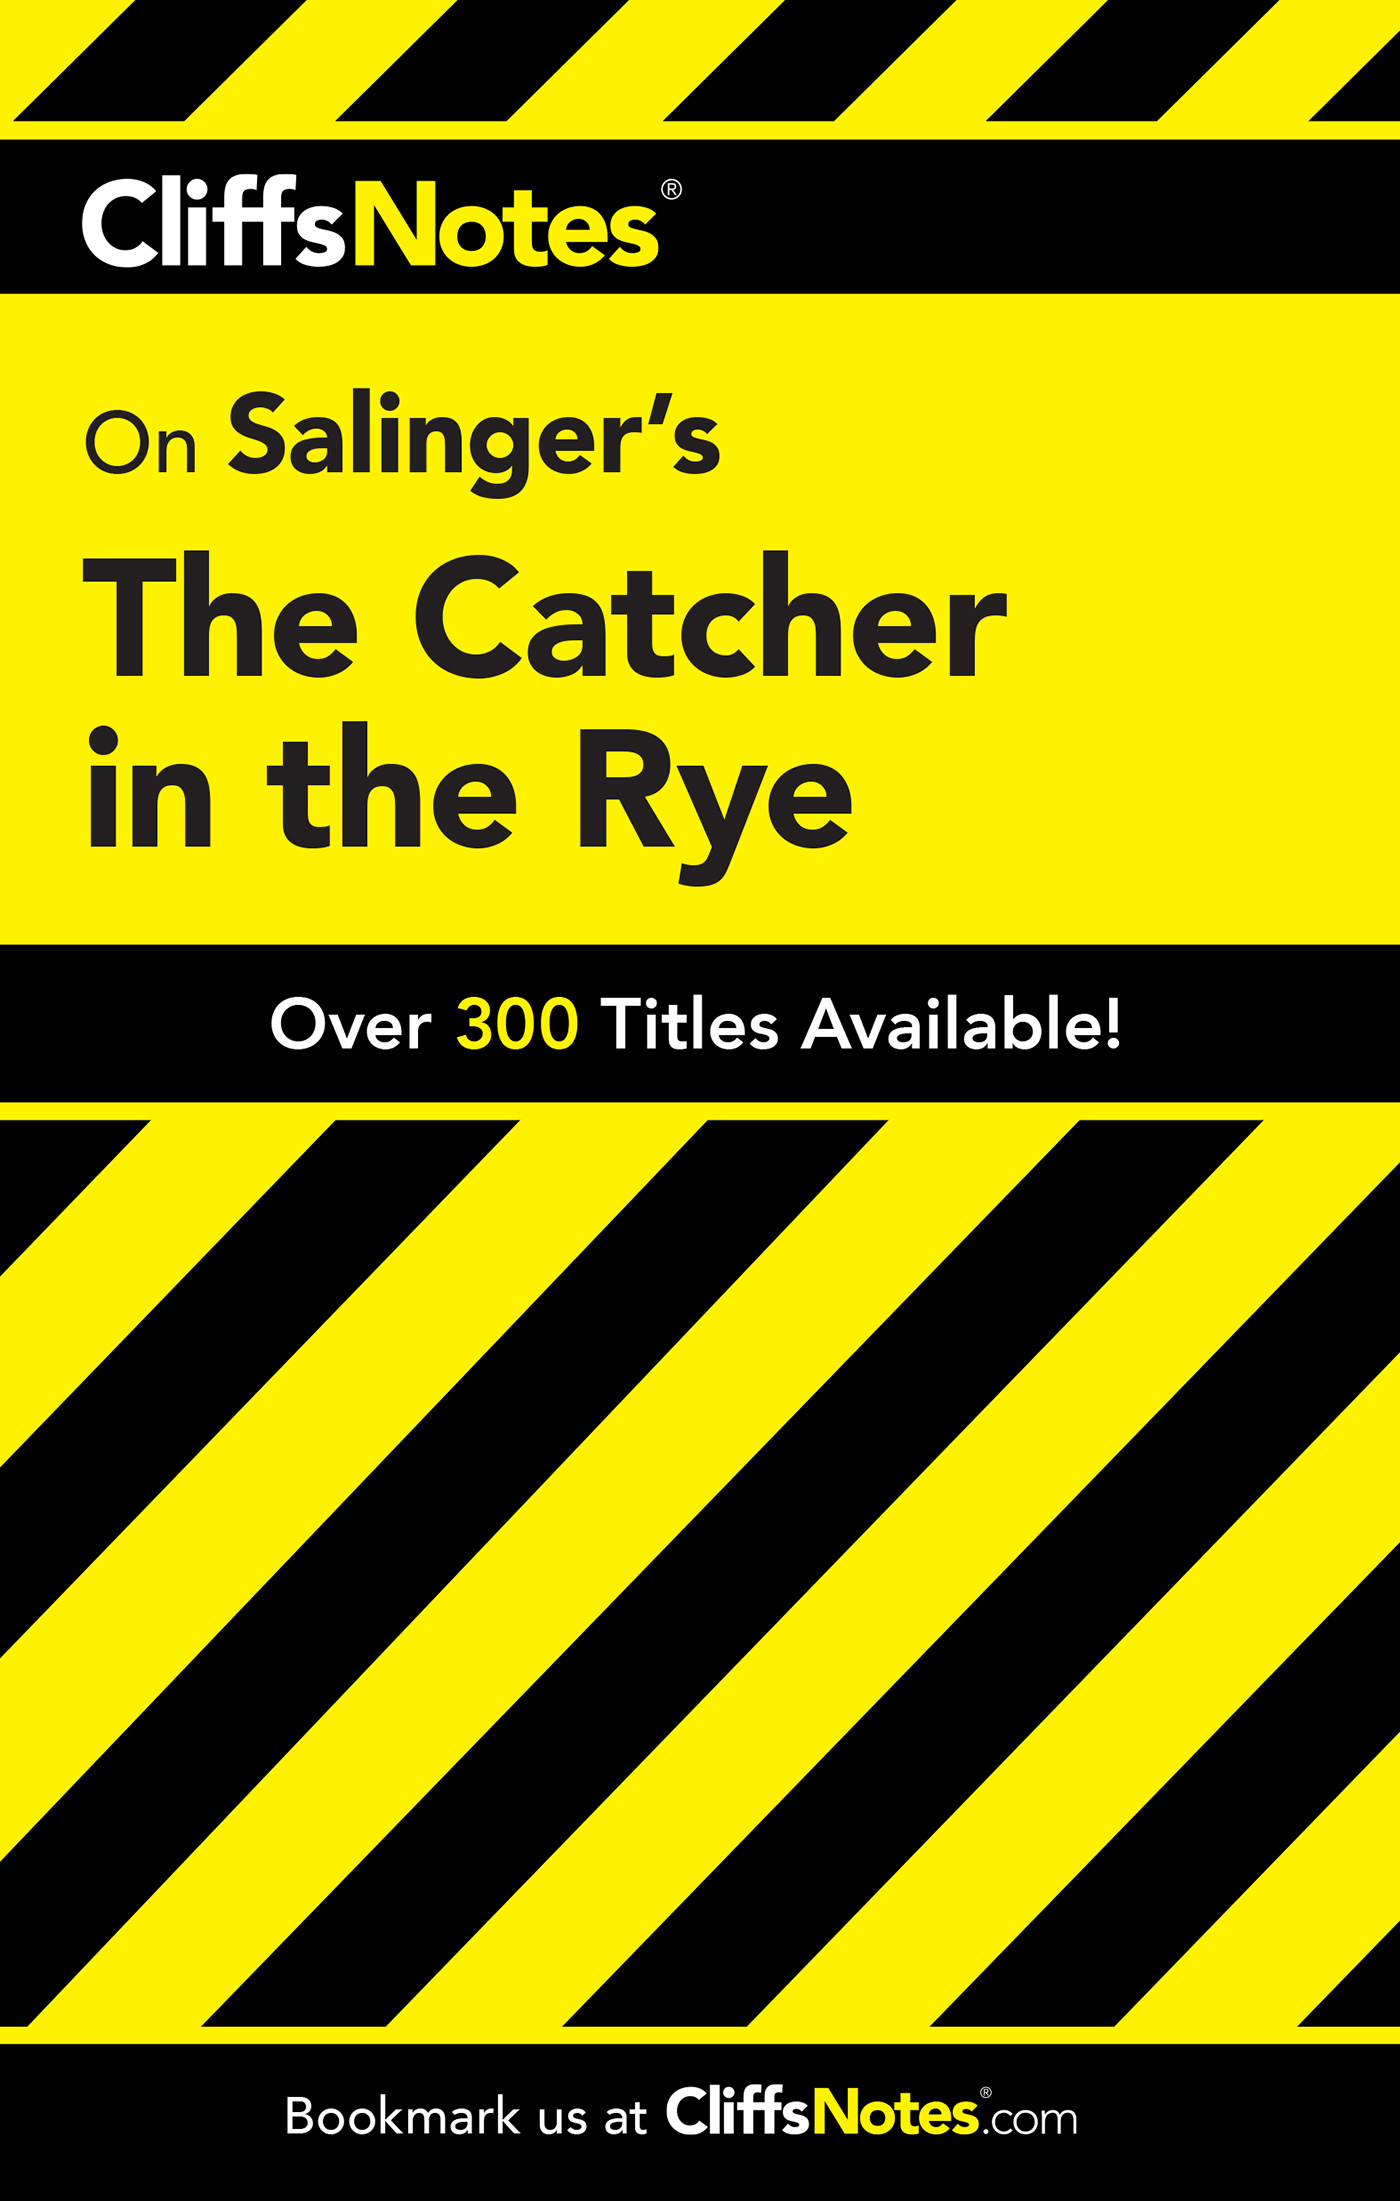 CliffsNotes on Salinger's The Catcher in the Rye-9780764585913